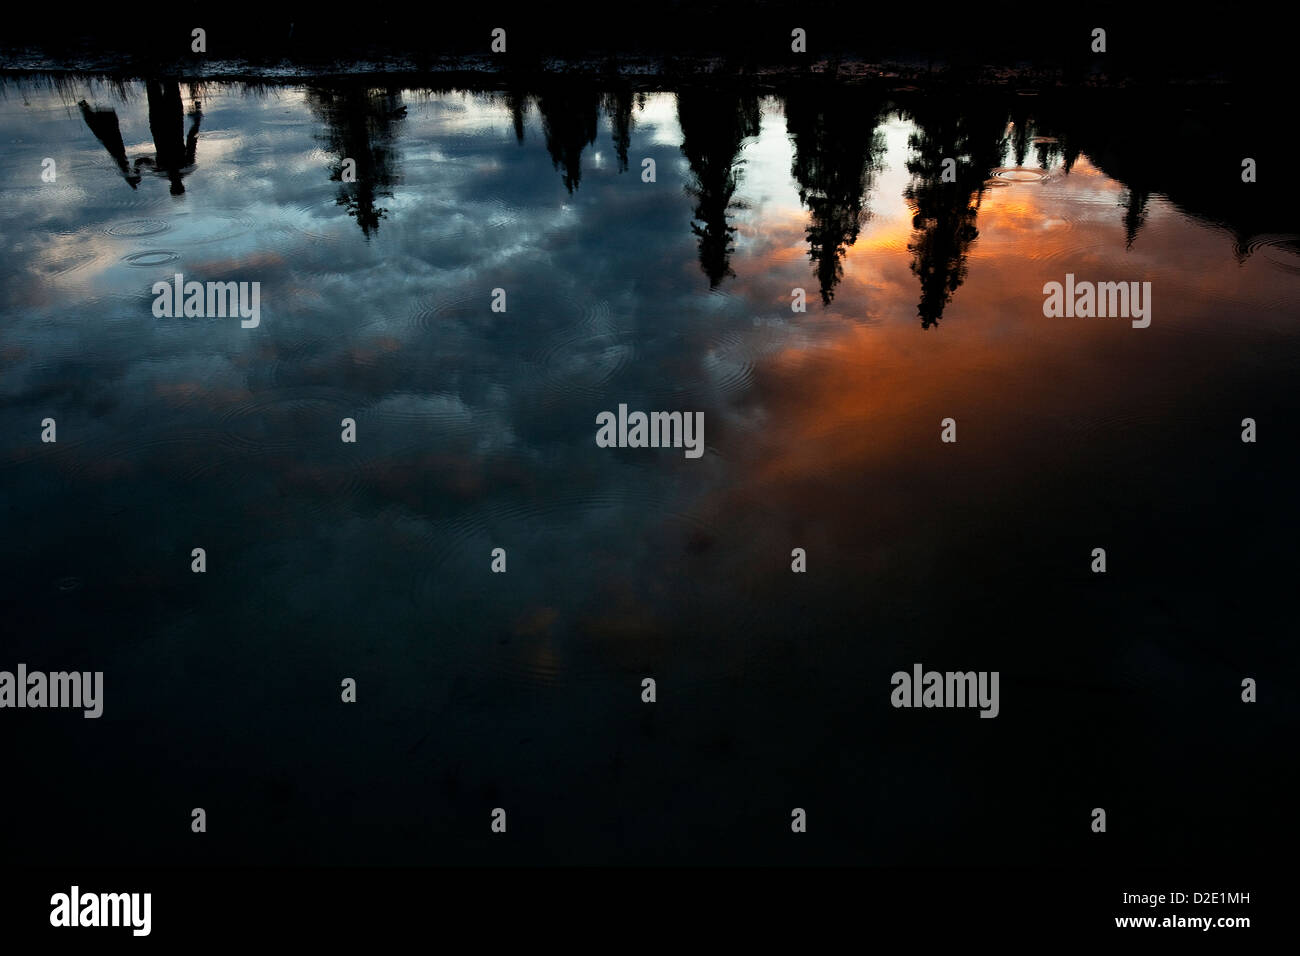 One man reflected upside down in a lake with colorful clouds and rain drops. - Stock Image